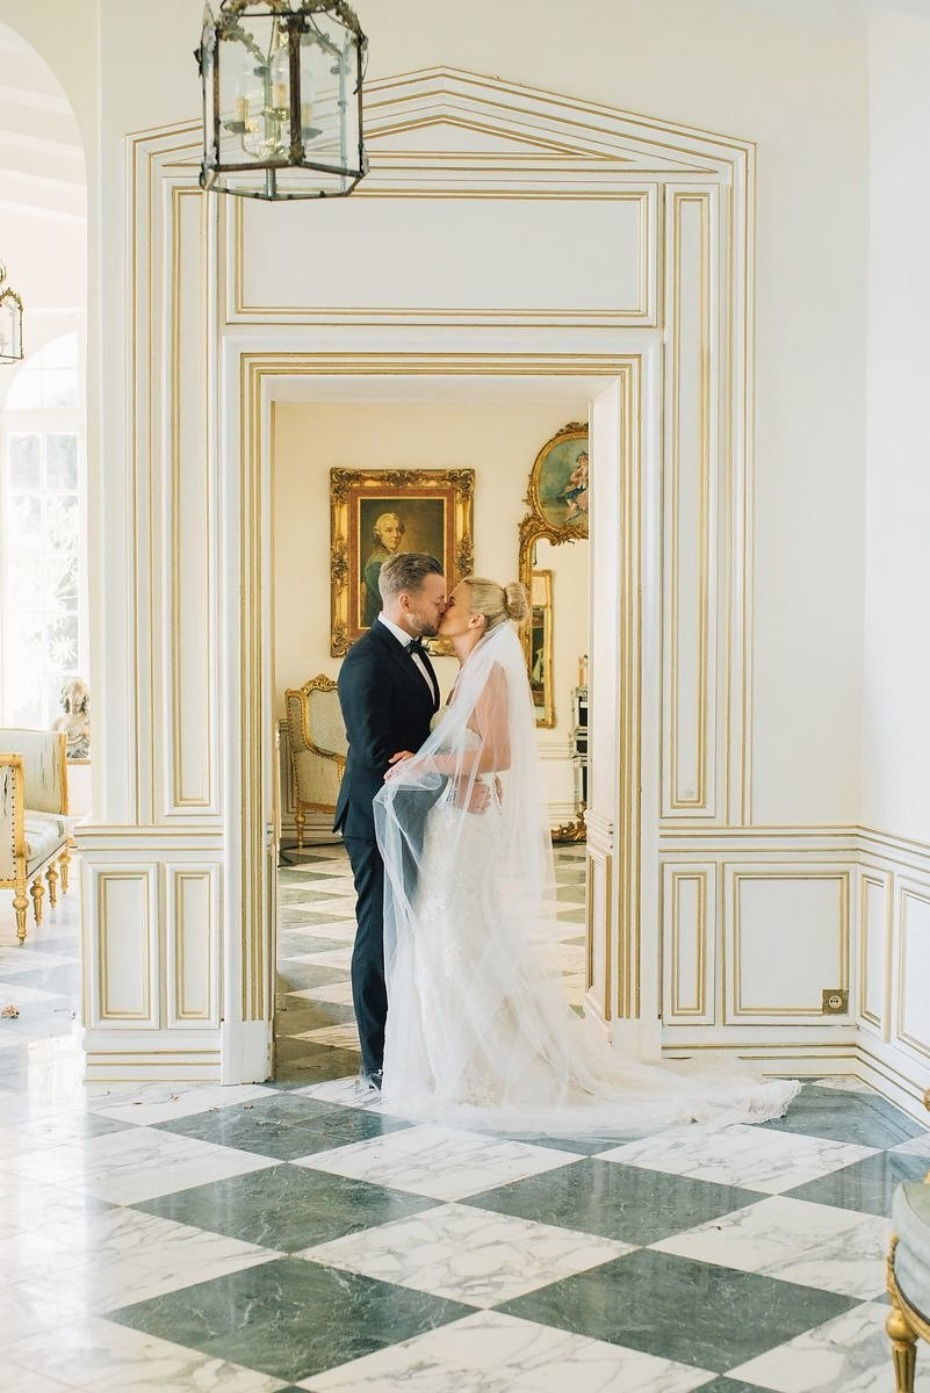 elegant summertime wedding at a french chateau